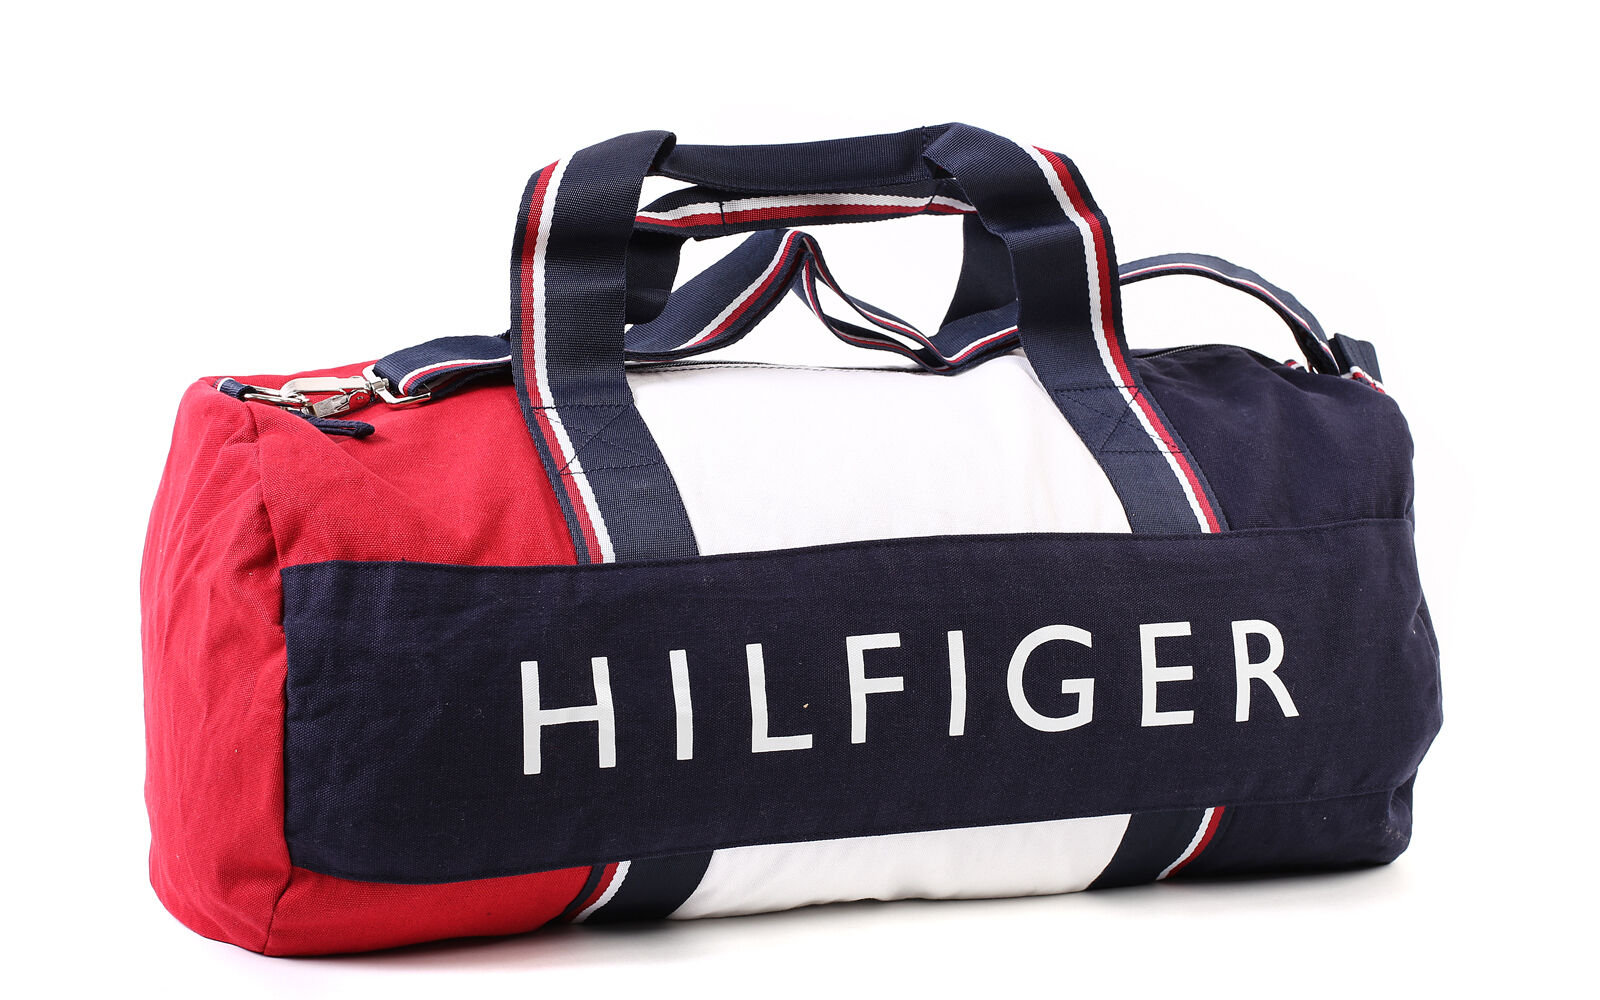 tommy hilfiger duffle bag tasche reisetasche sporttasche new eur 55 90 picclick de. Black Bedroom Furniture Sets. Home Design Ideas